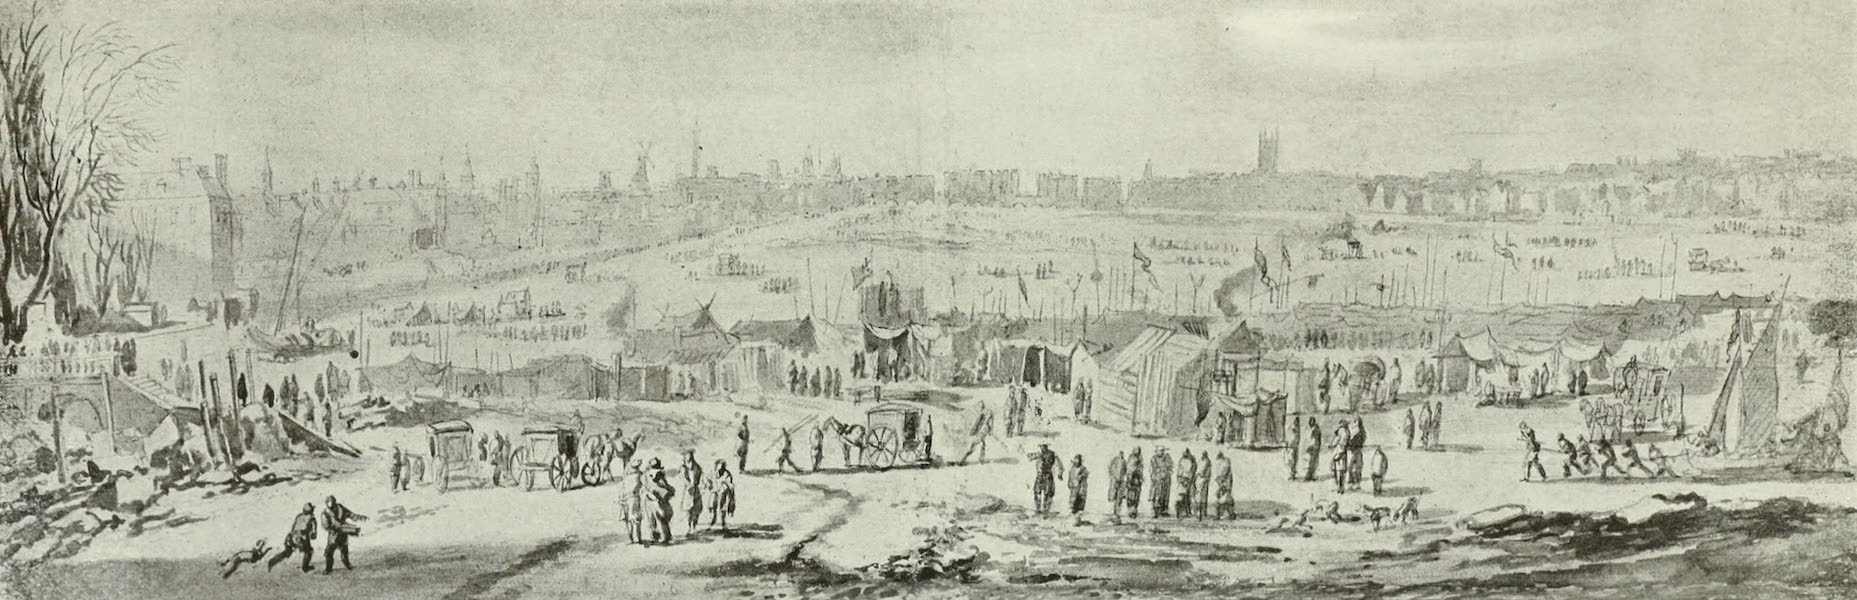 London on Thames in Bygone Days - The Frost Fair of 1684 (1903)